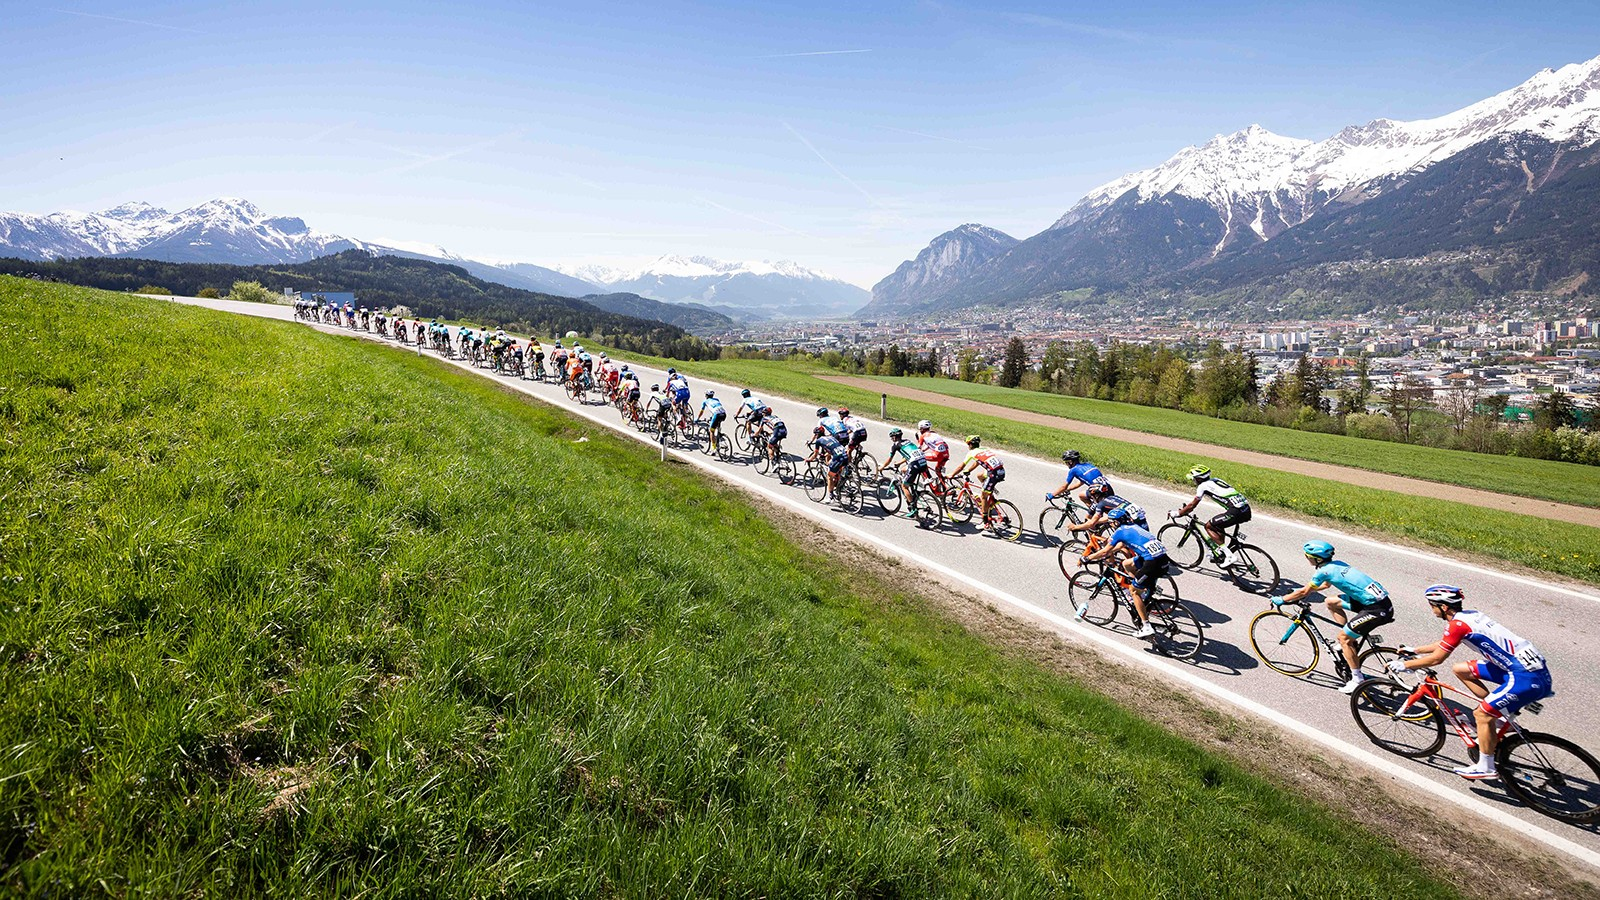 Visitors of the 2018 UCI Road World Championships will enjoy the fantastic scenery in Innsbruck-Tirol